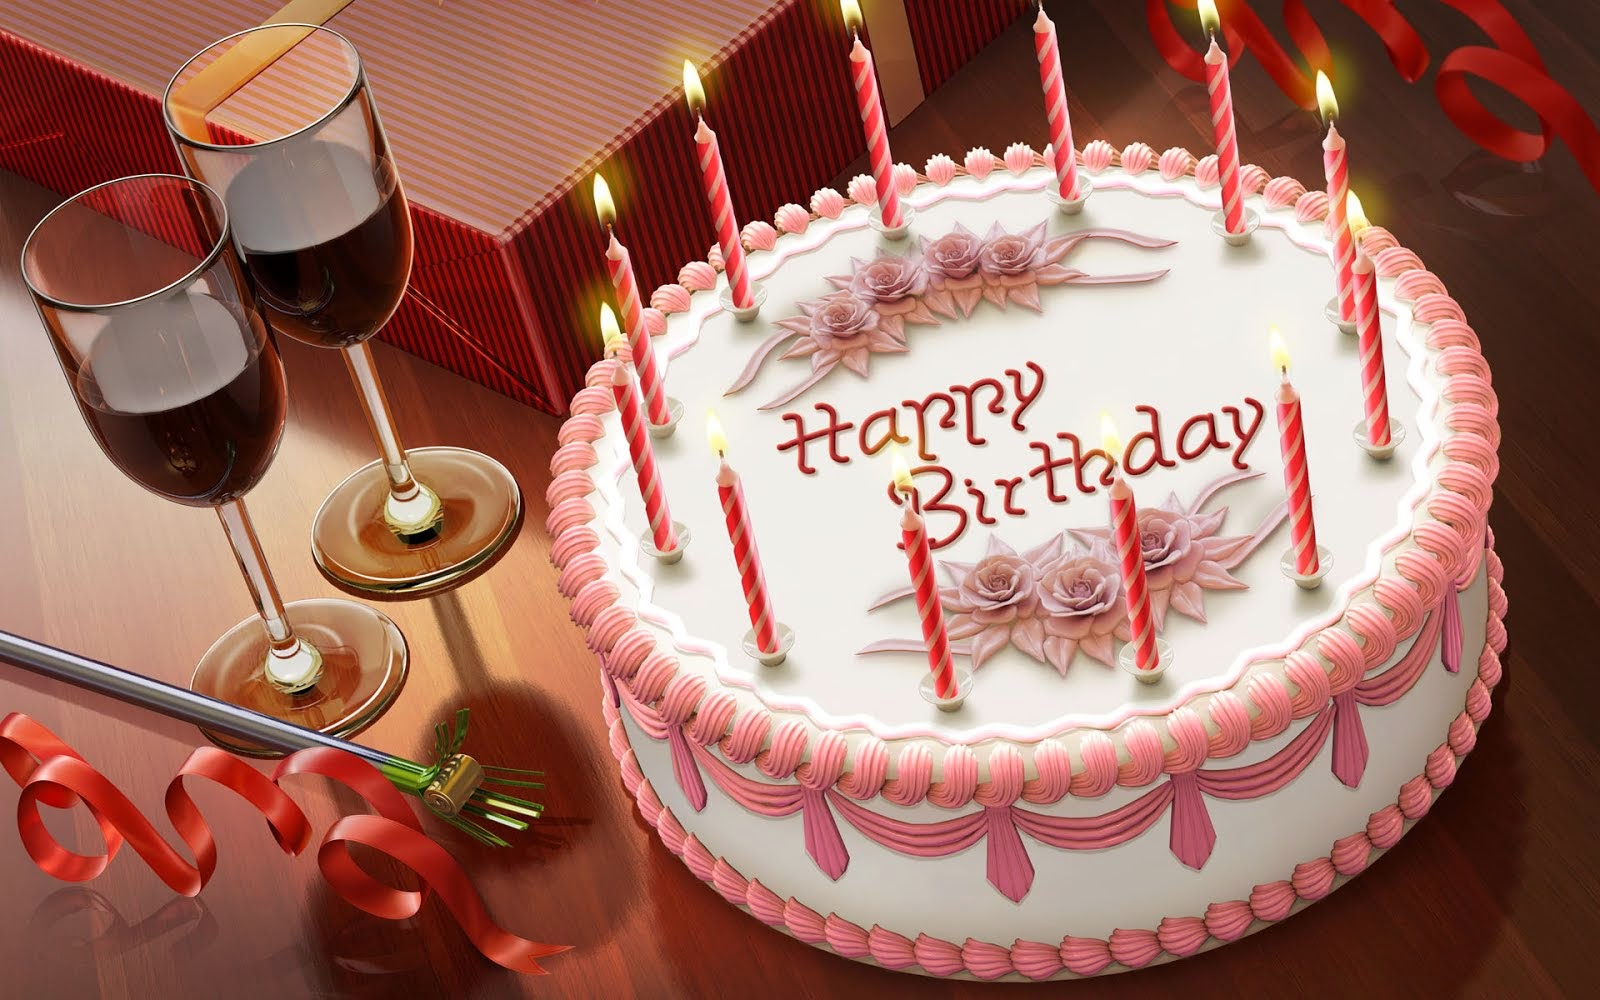 Birthday Cake Images With Name Dinesh : Happy Birthday Wallpapers Download Free High Definition ...